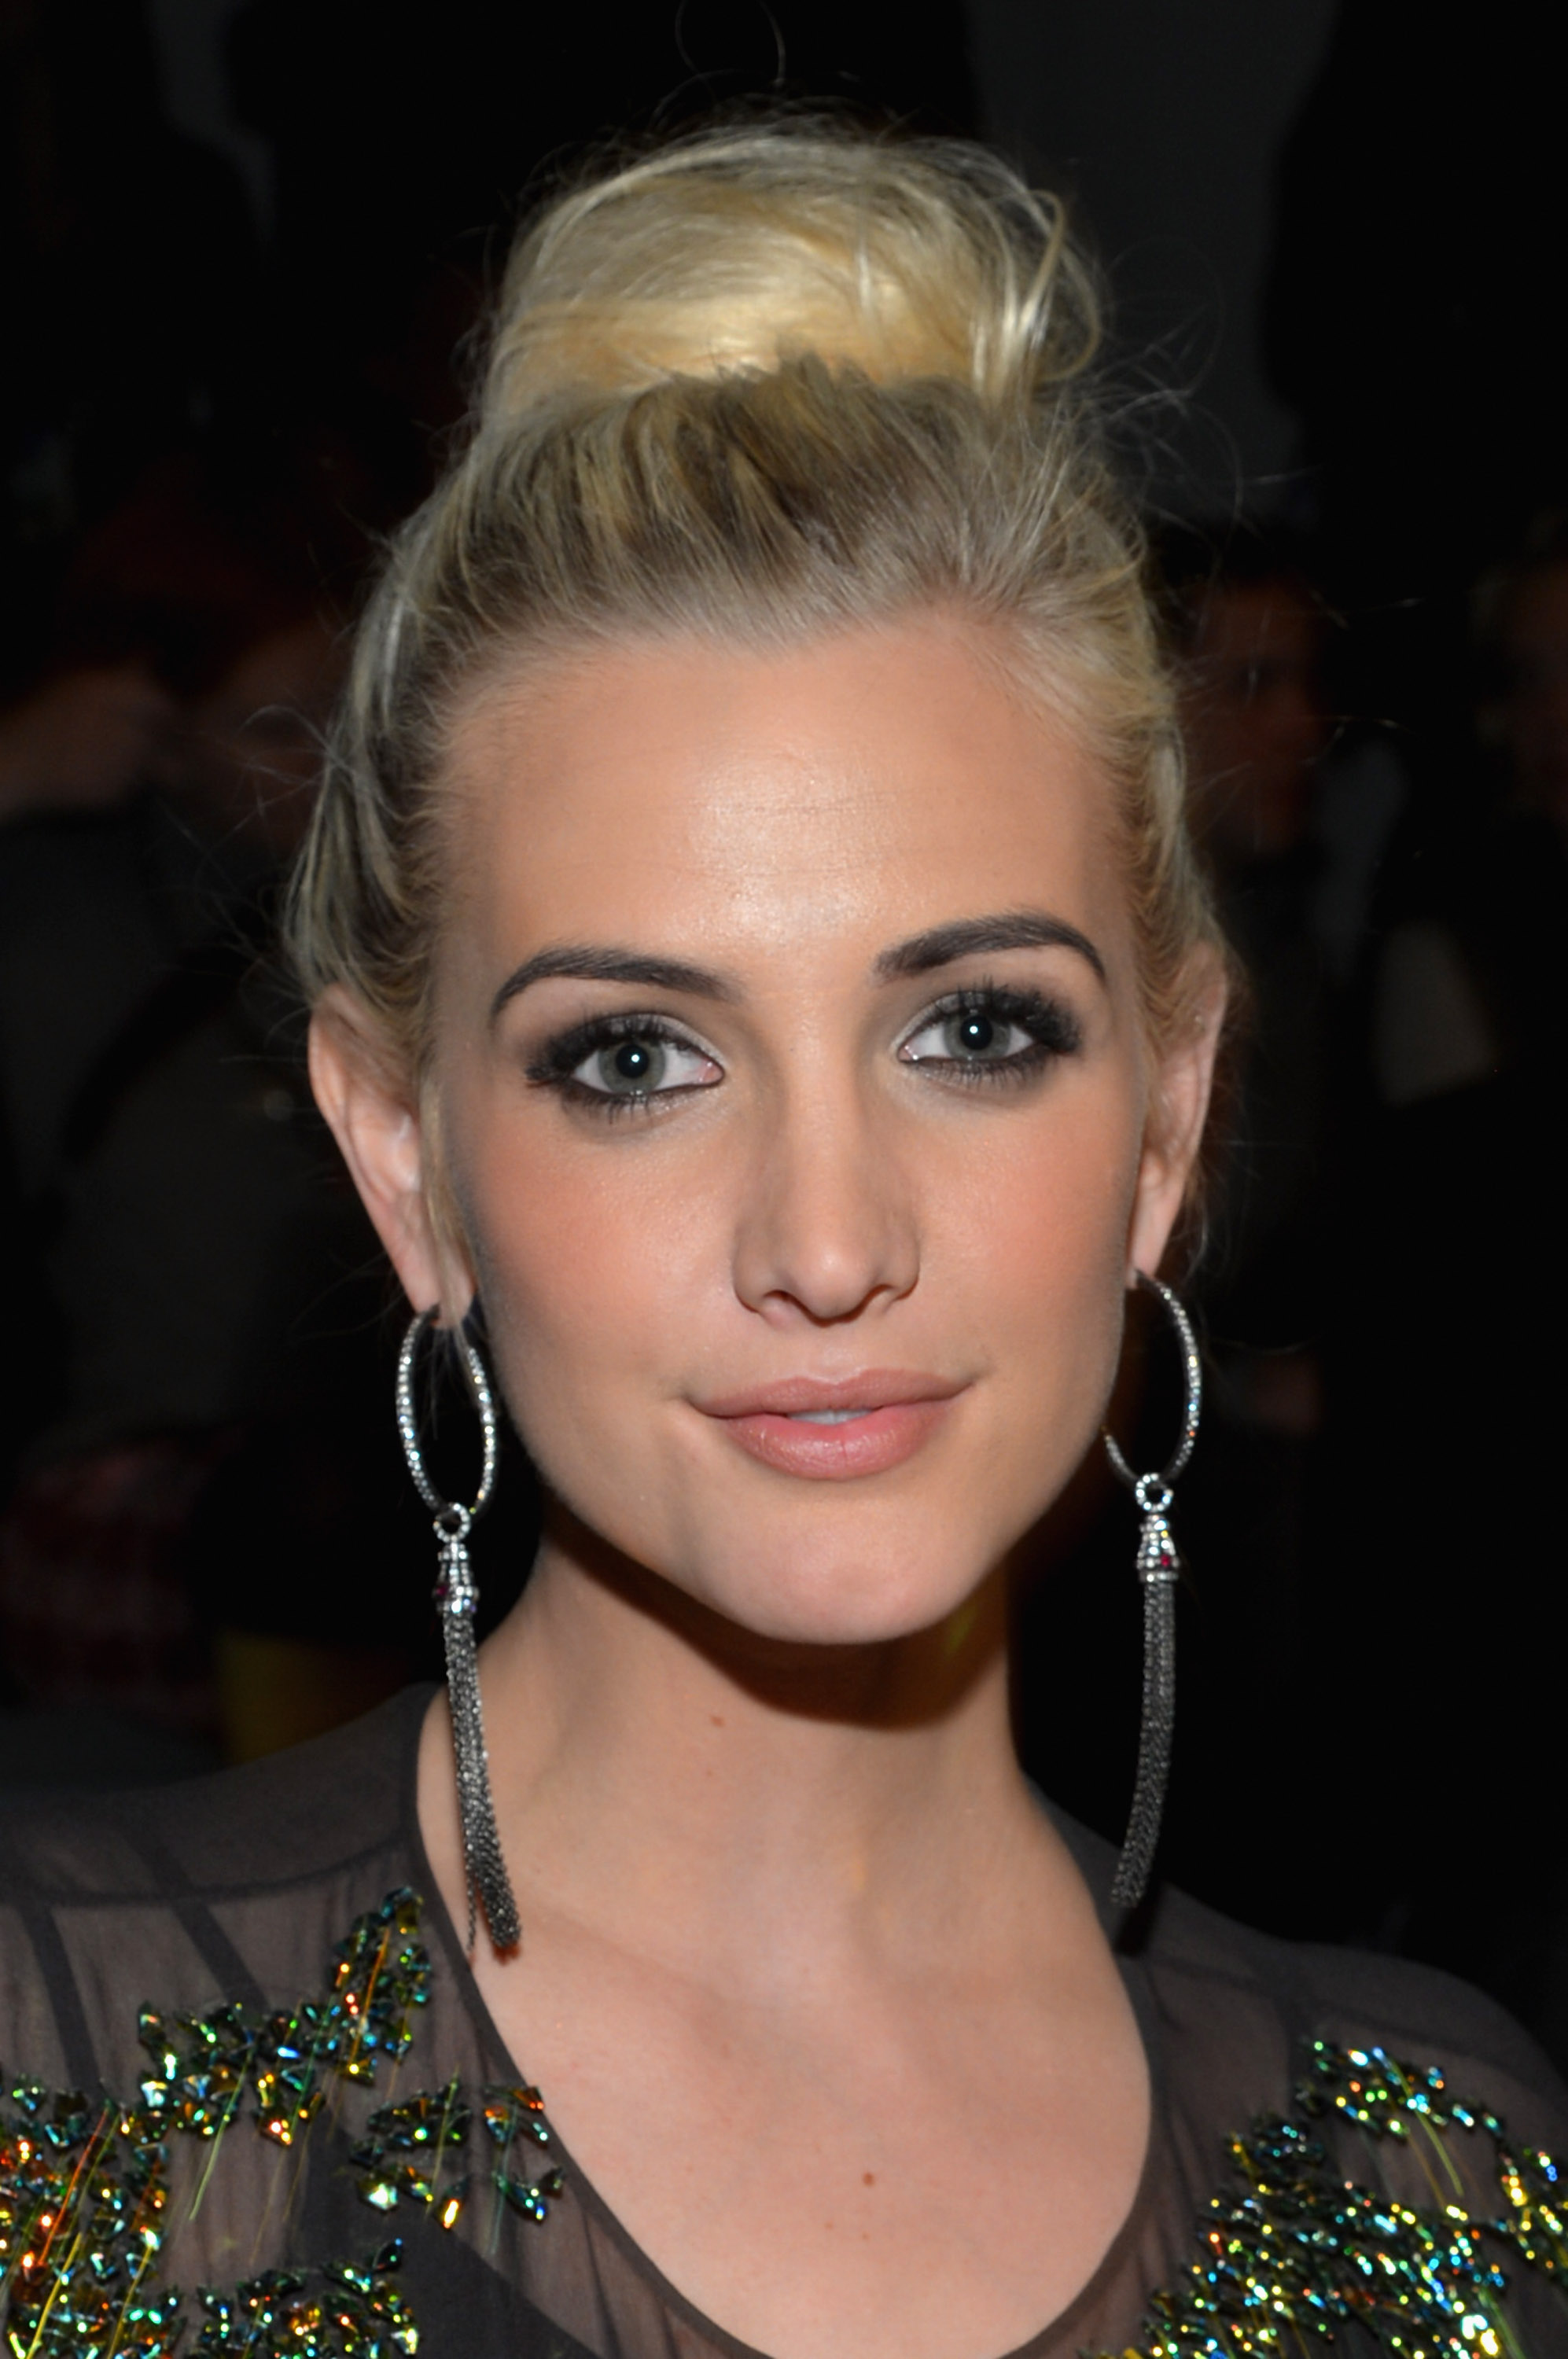 Ashlee Simpson | Keep Up With the Beauty-Savvy Celebrities ... Ashlee Simpson